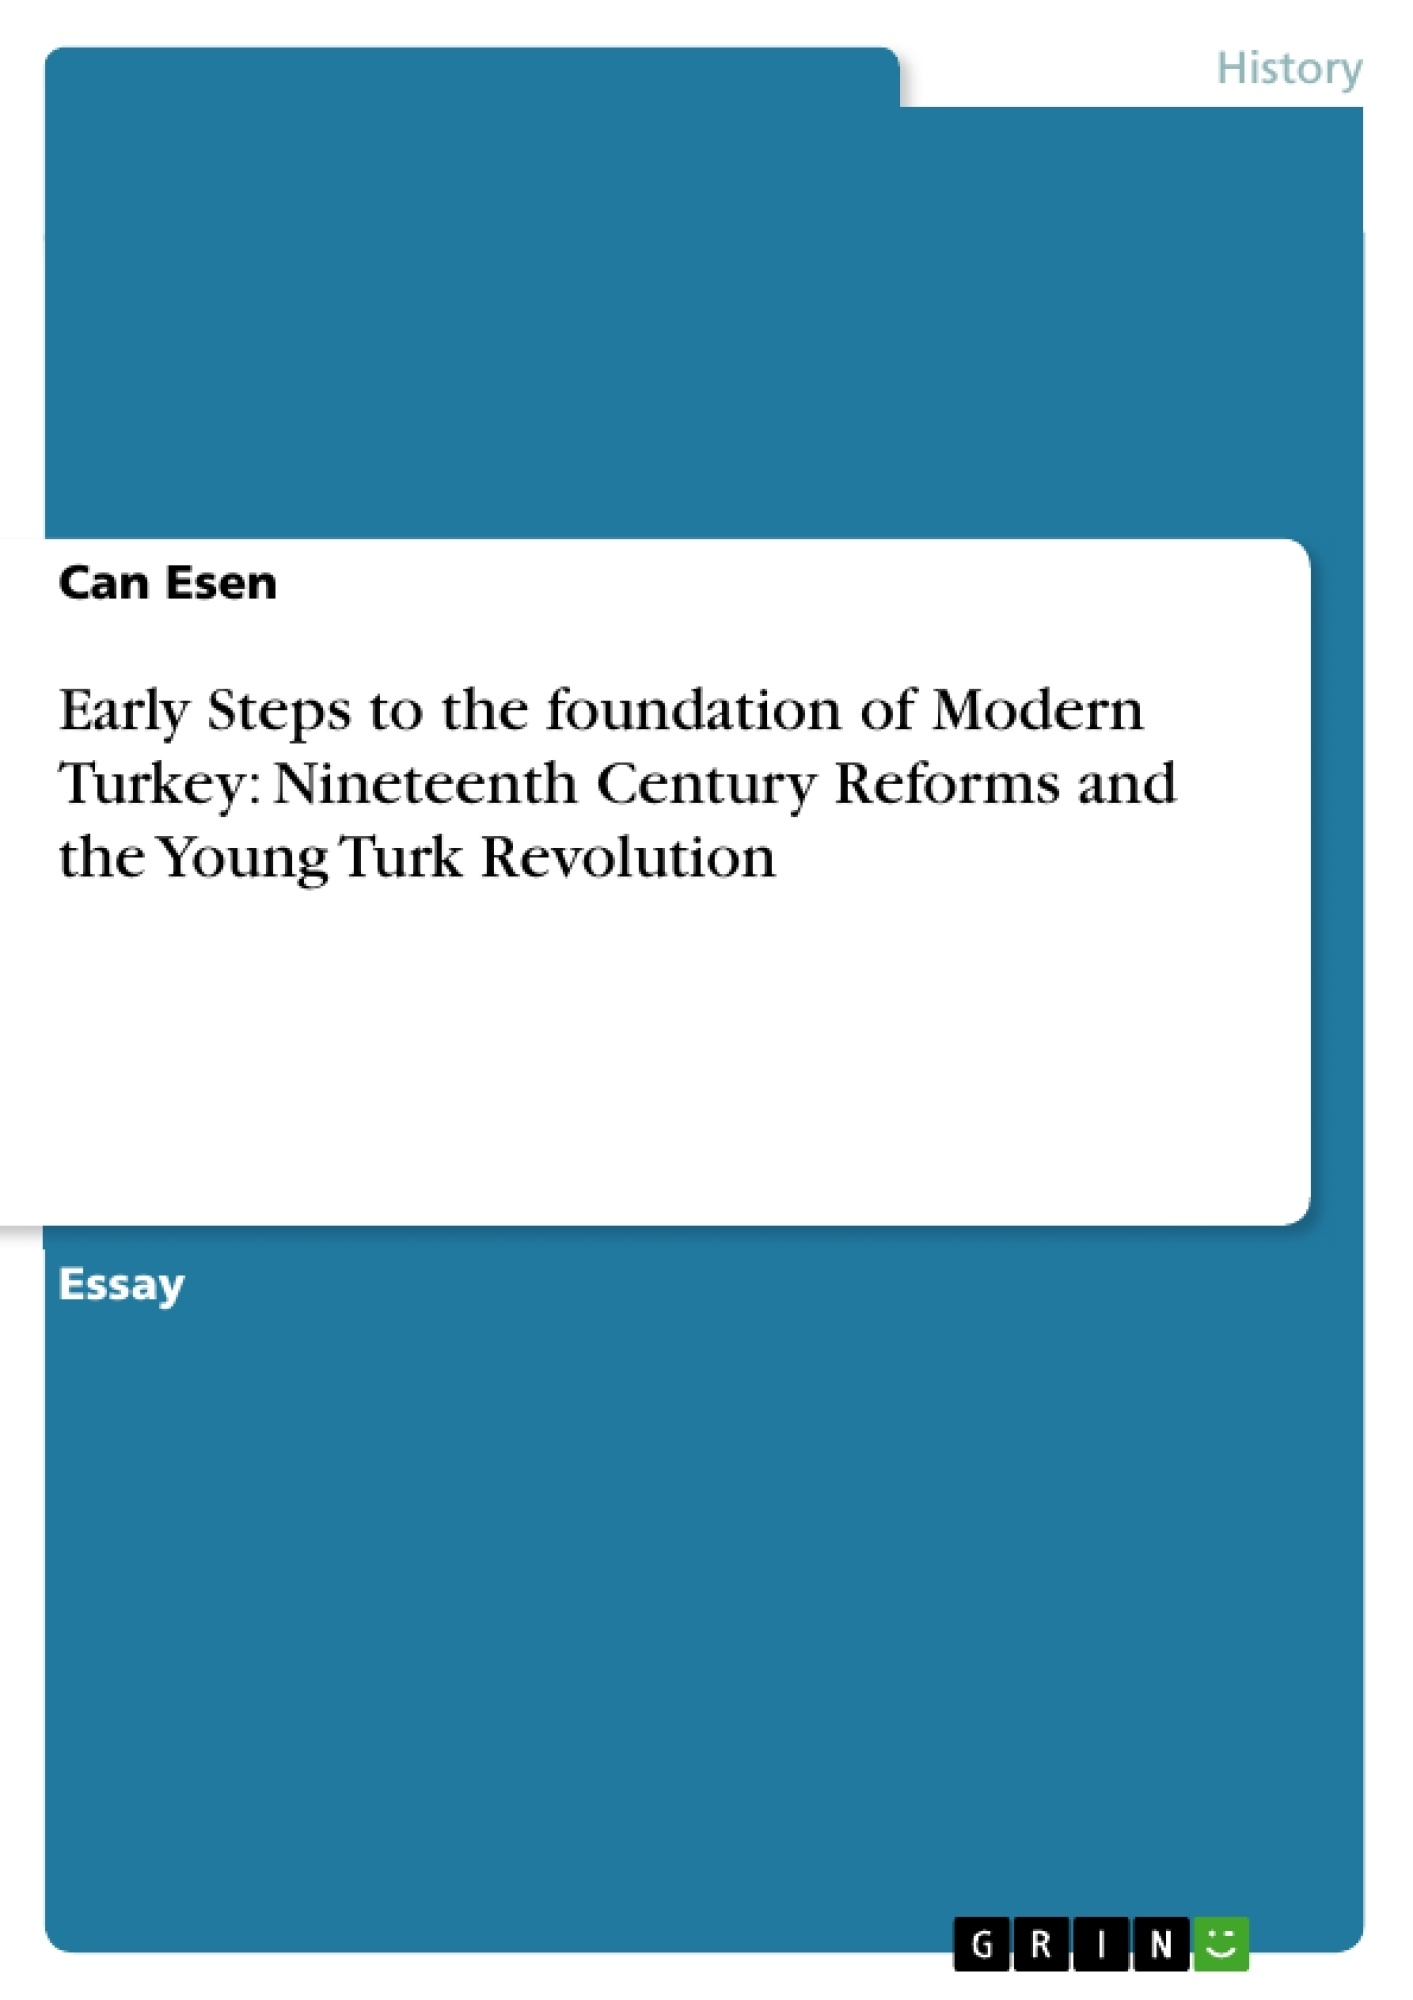 Title: Early Steps to the foundation of Modern Turkey: Nineteenth Century Reforms and the Young Turk Revolution